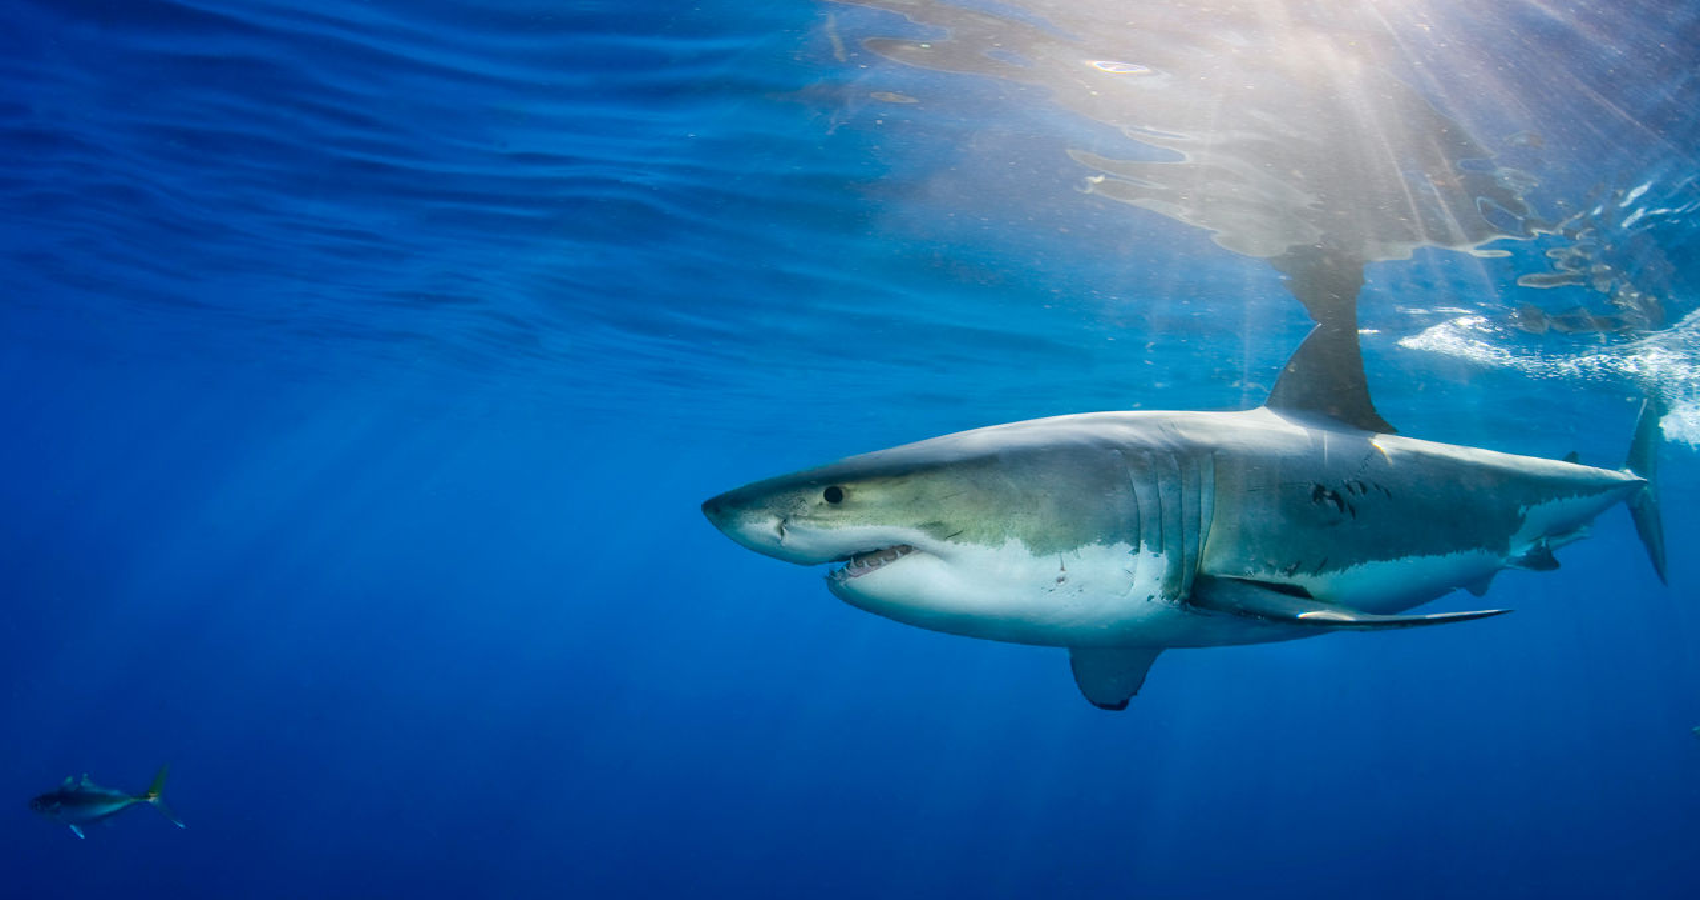 Sharks Use Earth's Magnetic Fields To Find Their Way Home